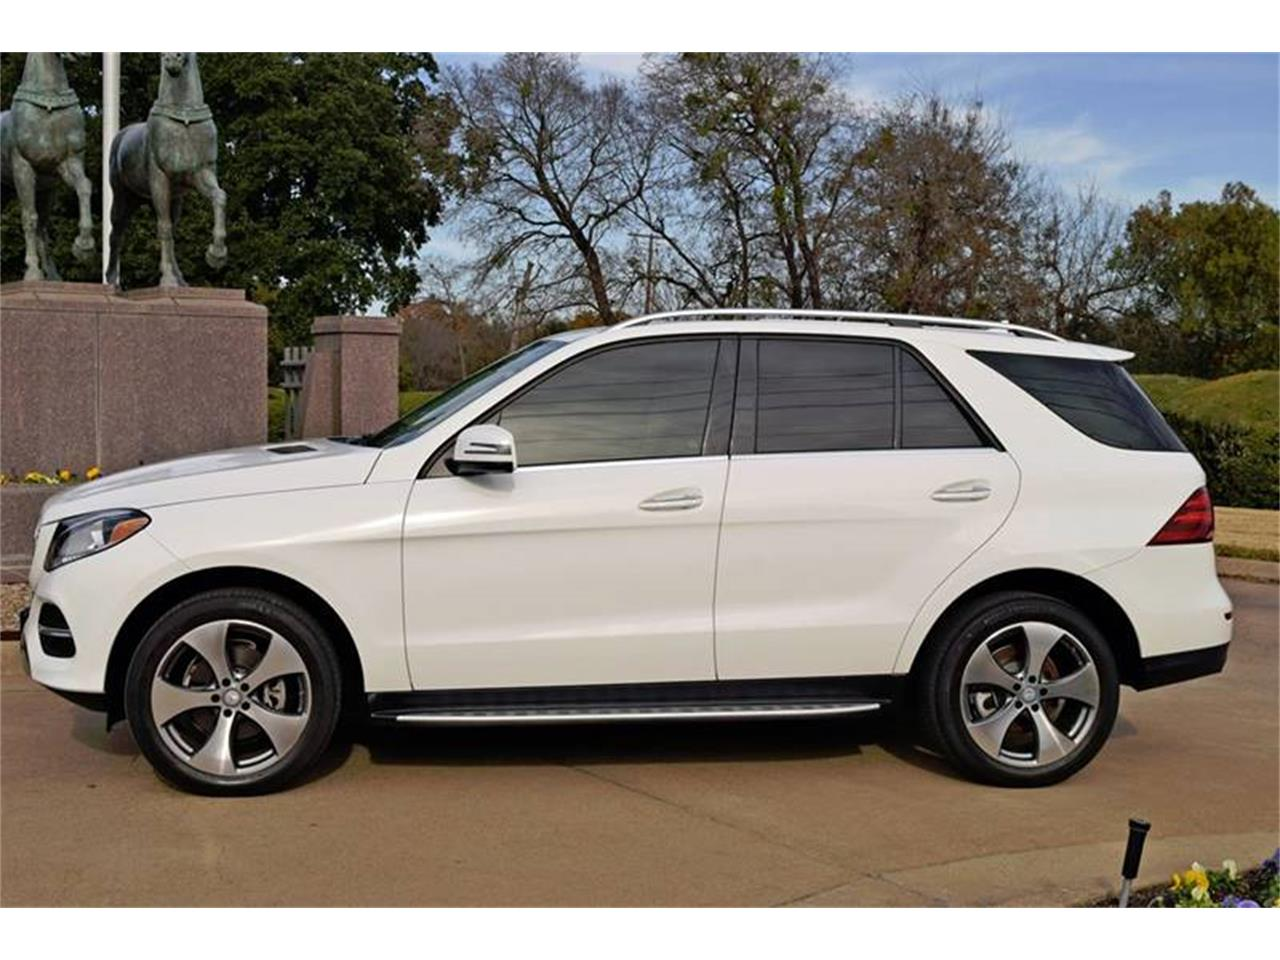 2016 Mercedes-Benz GL-Class (CC-1304145) for sale in Fort Worth, Texas